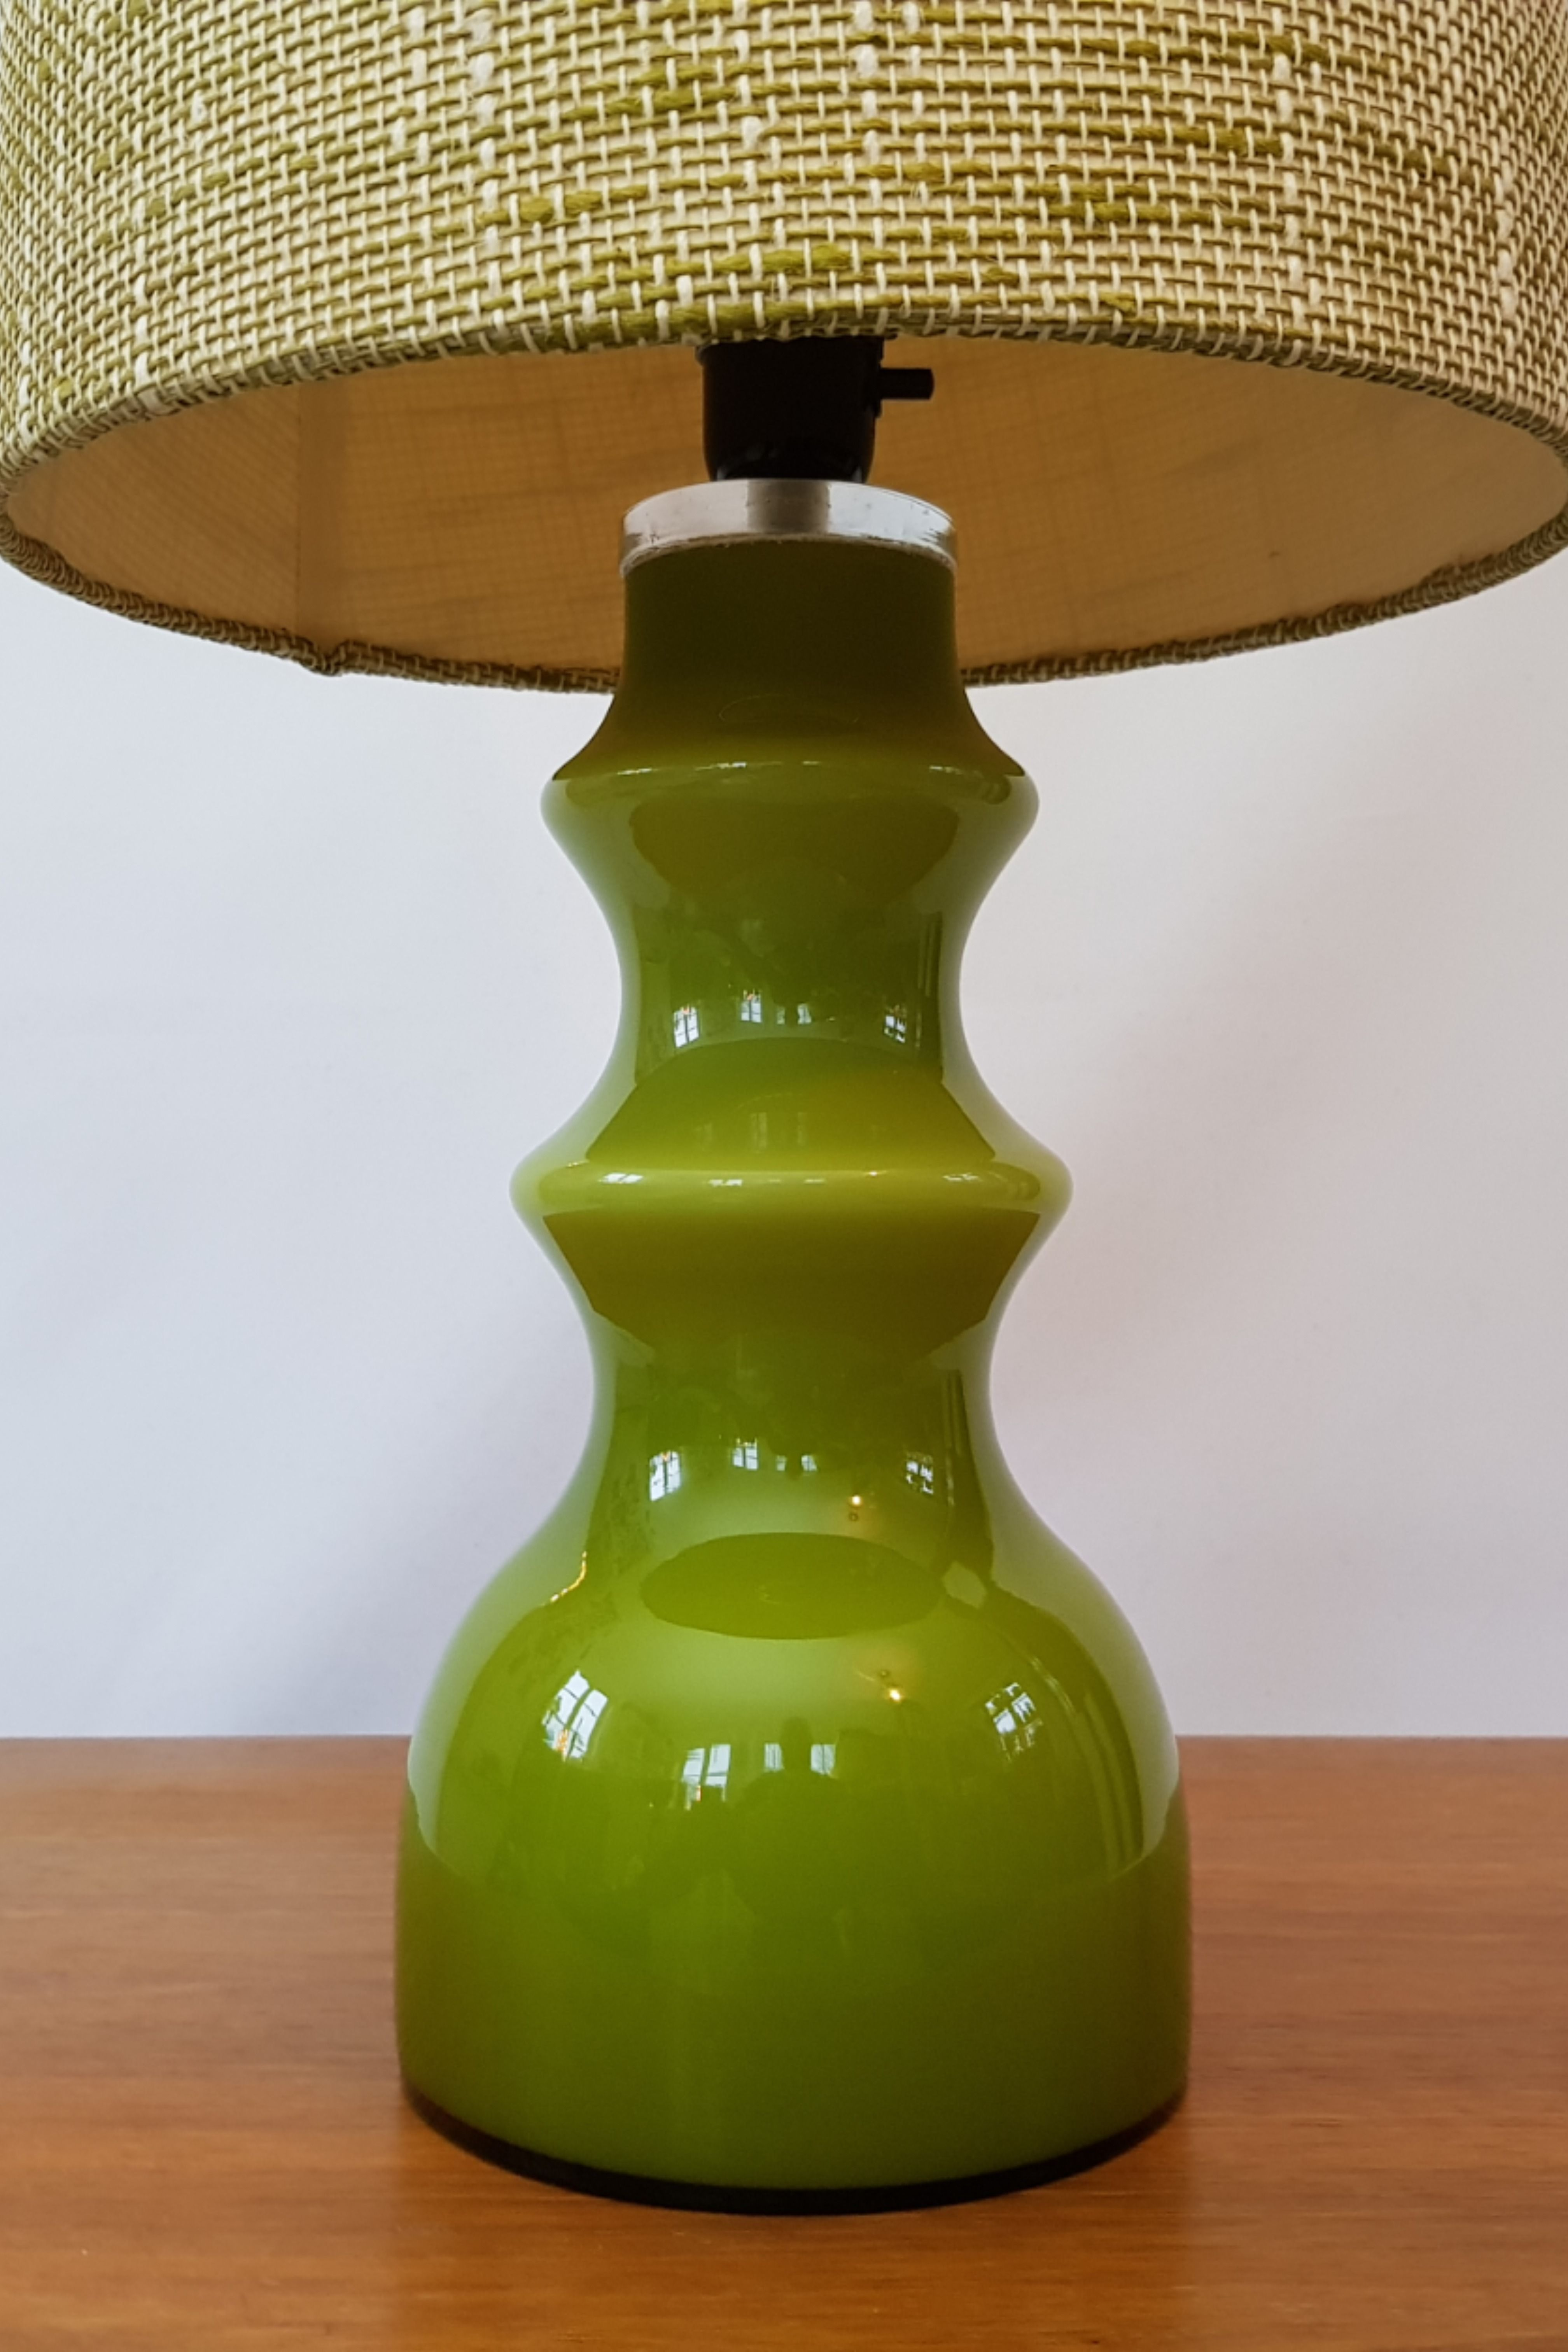 High Green Sommerso Glass Table Lamp With Shade Designed By Gert Nystrom For Hyllinge Glassworks Sweden 1960s Swedish Design Glass Table Lamp Lamp Table Lamp